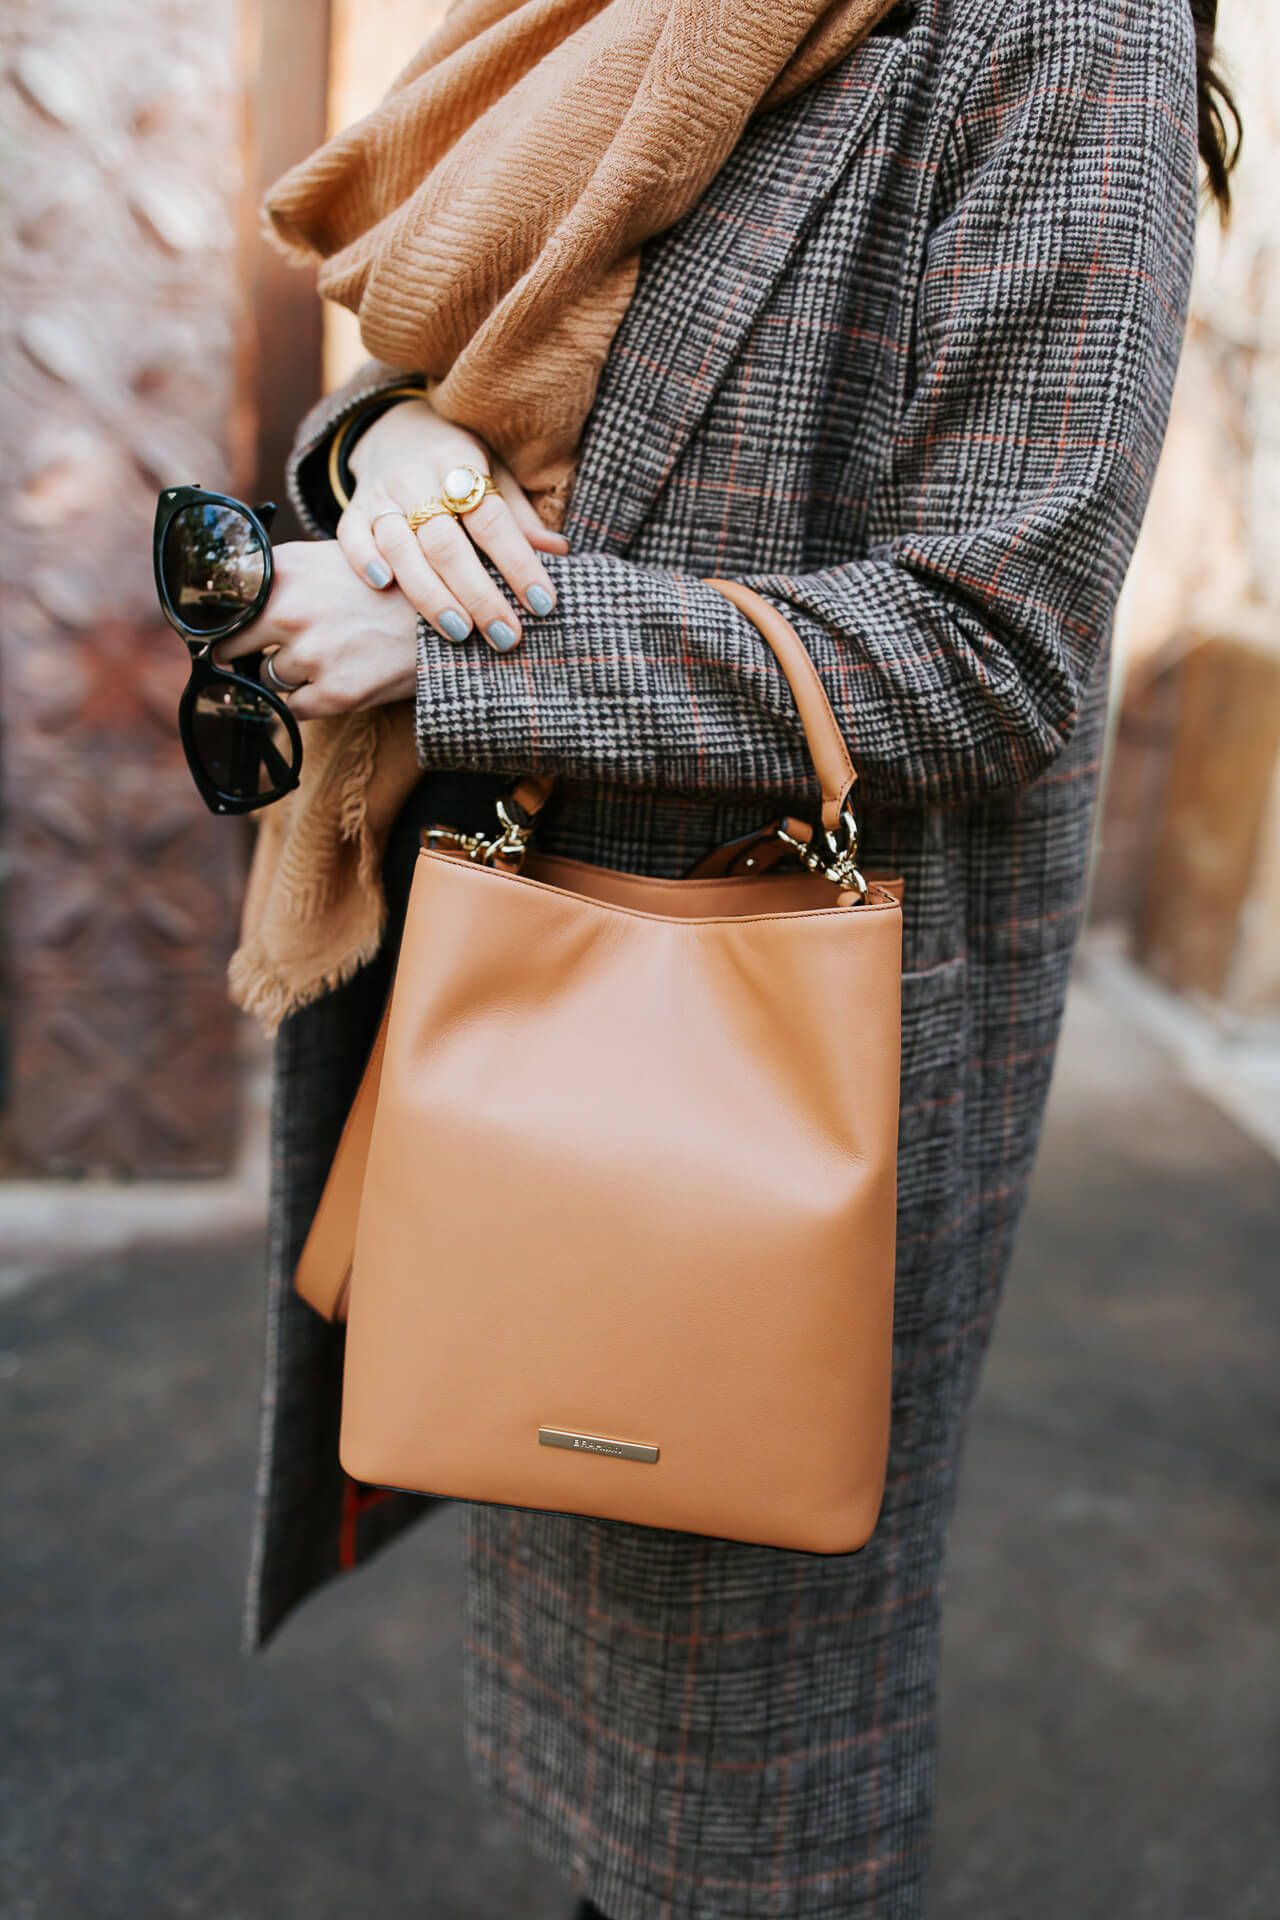 I love a classic brown leather handbag.